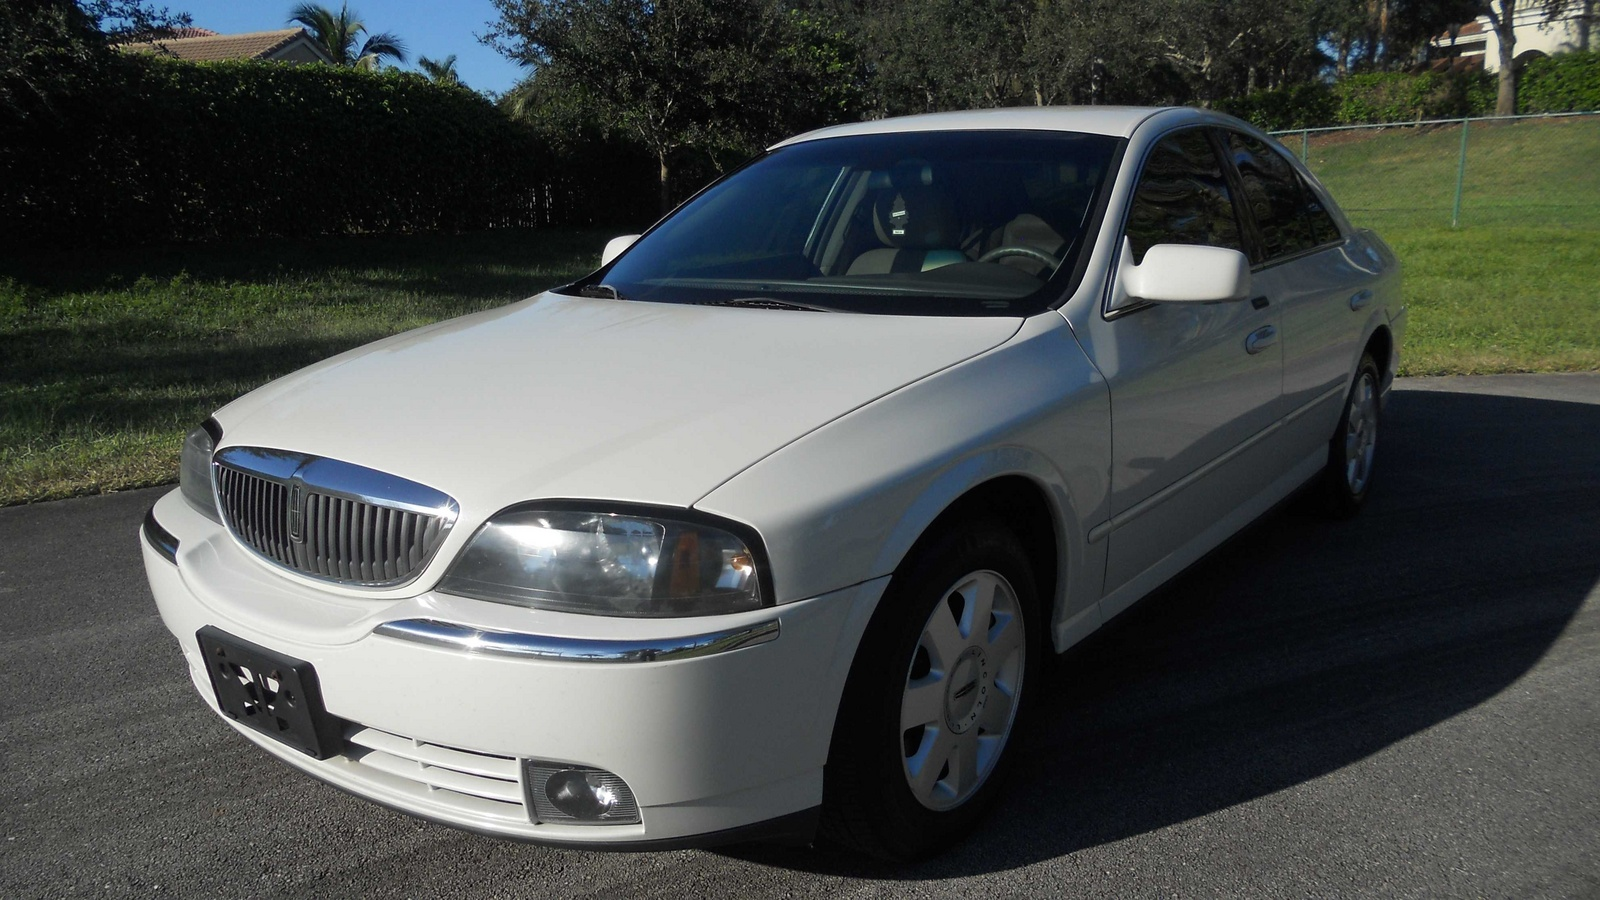 2005 Lincoln Ls V6 Owners Manual